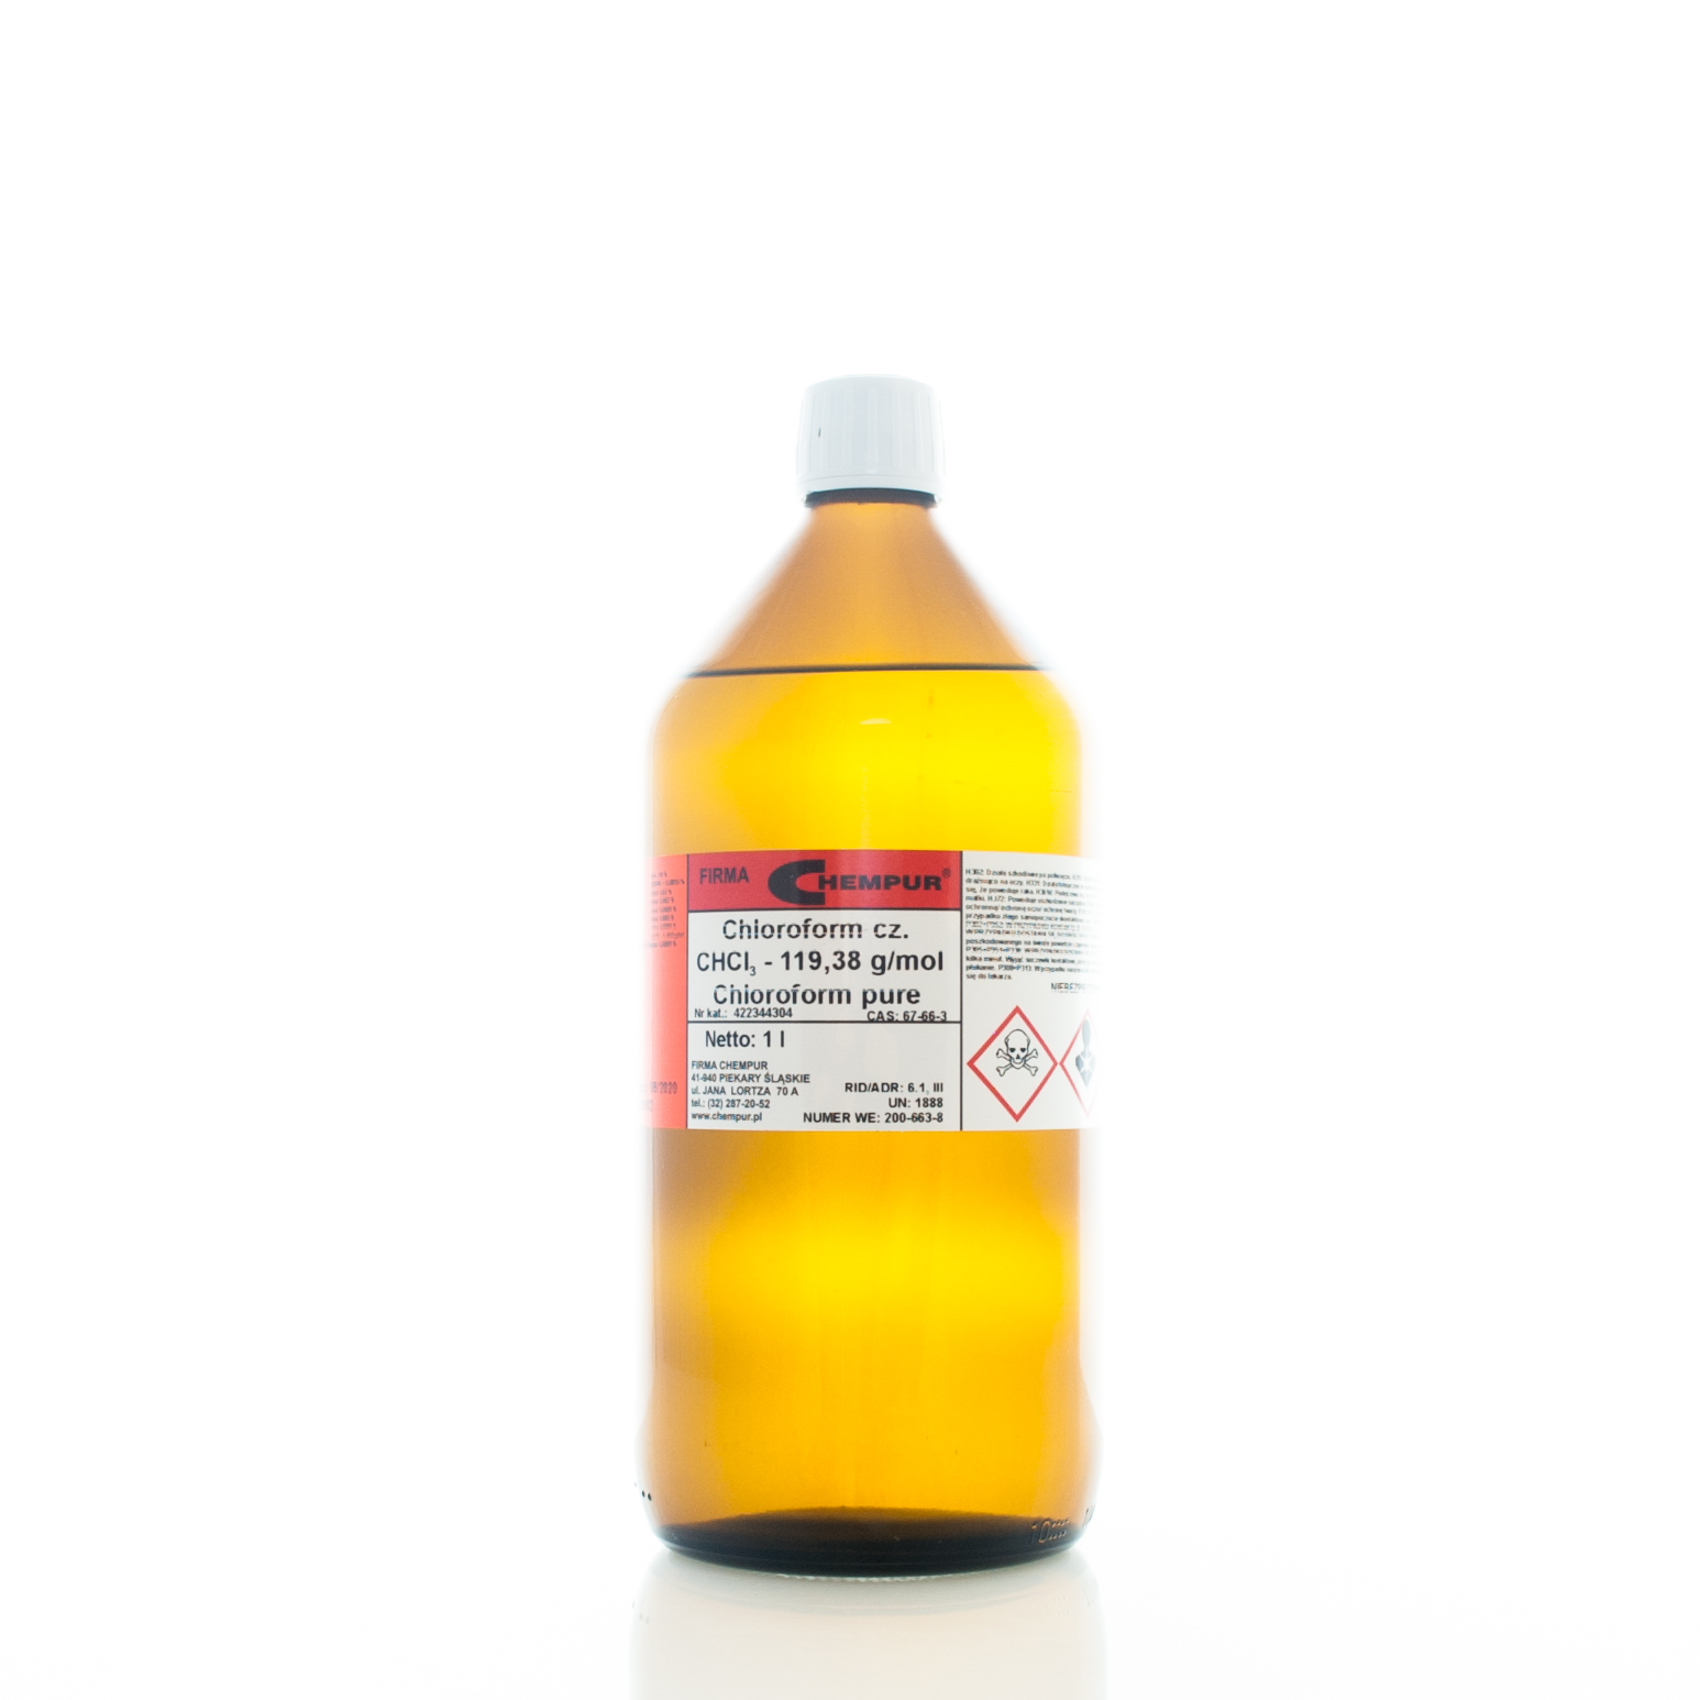 Chloroform pure